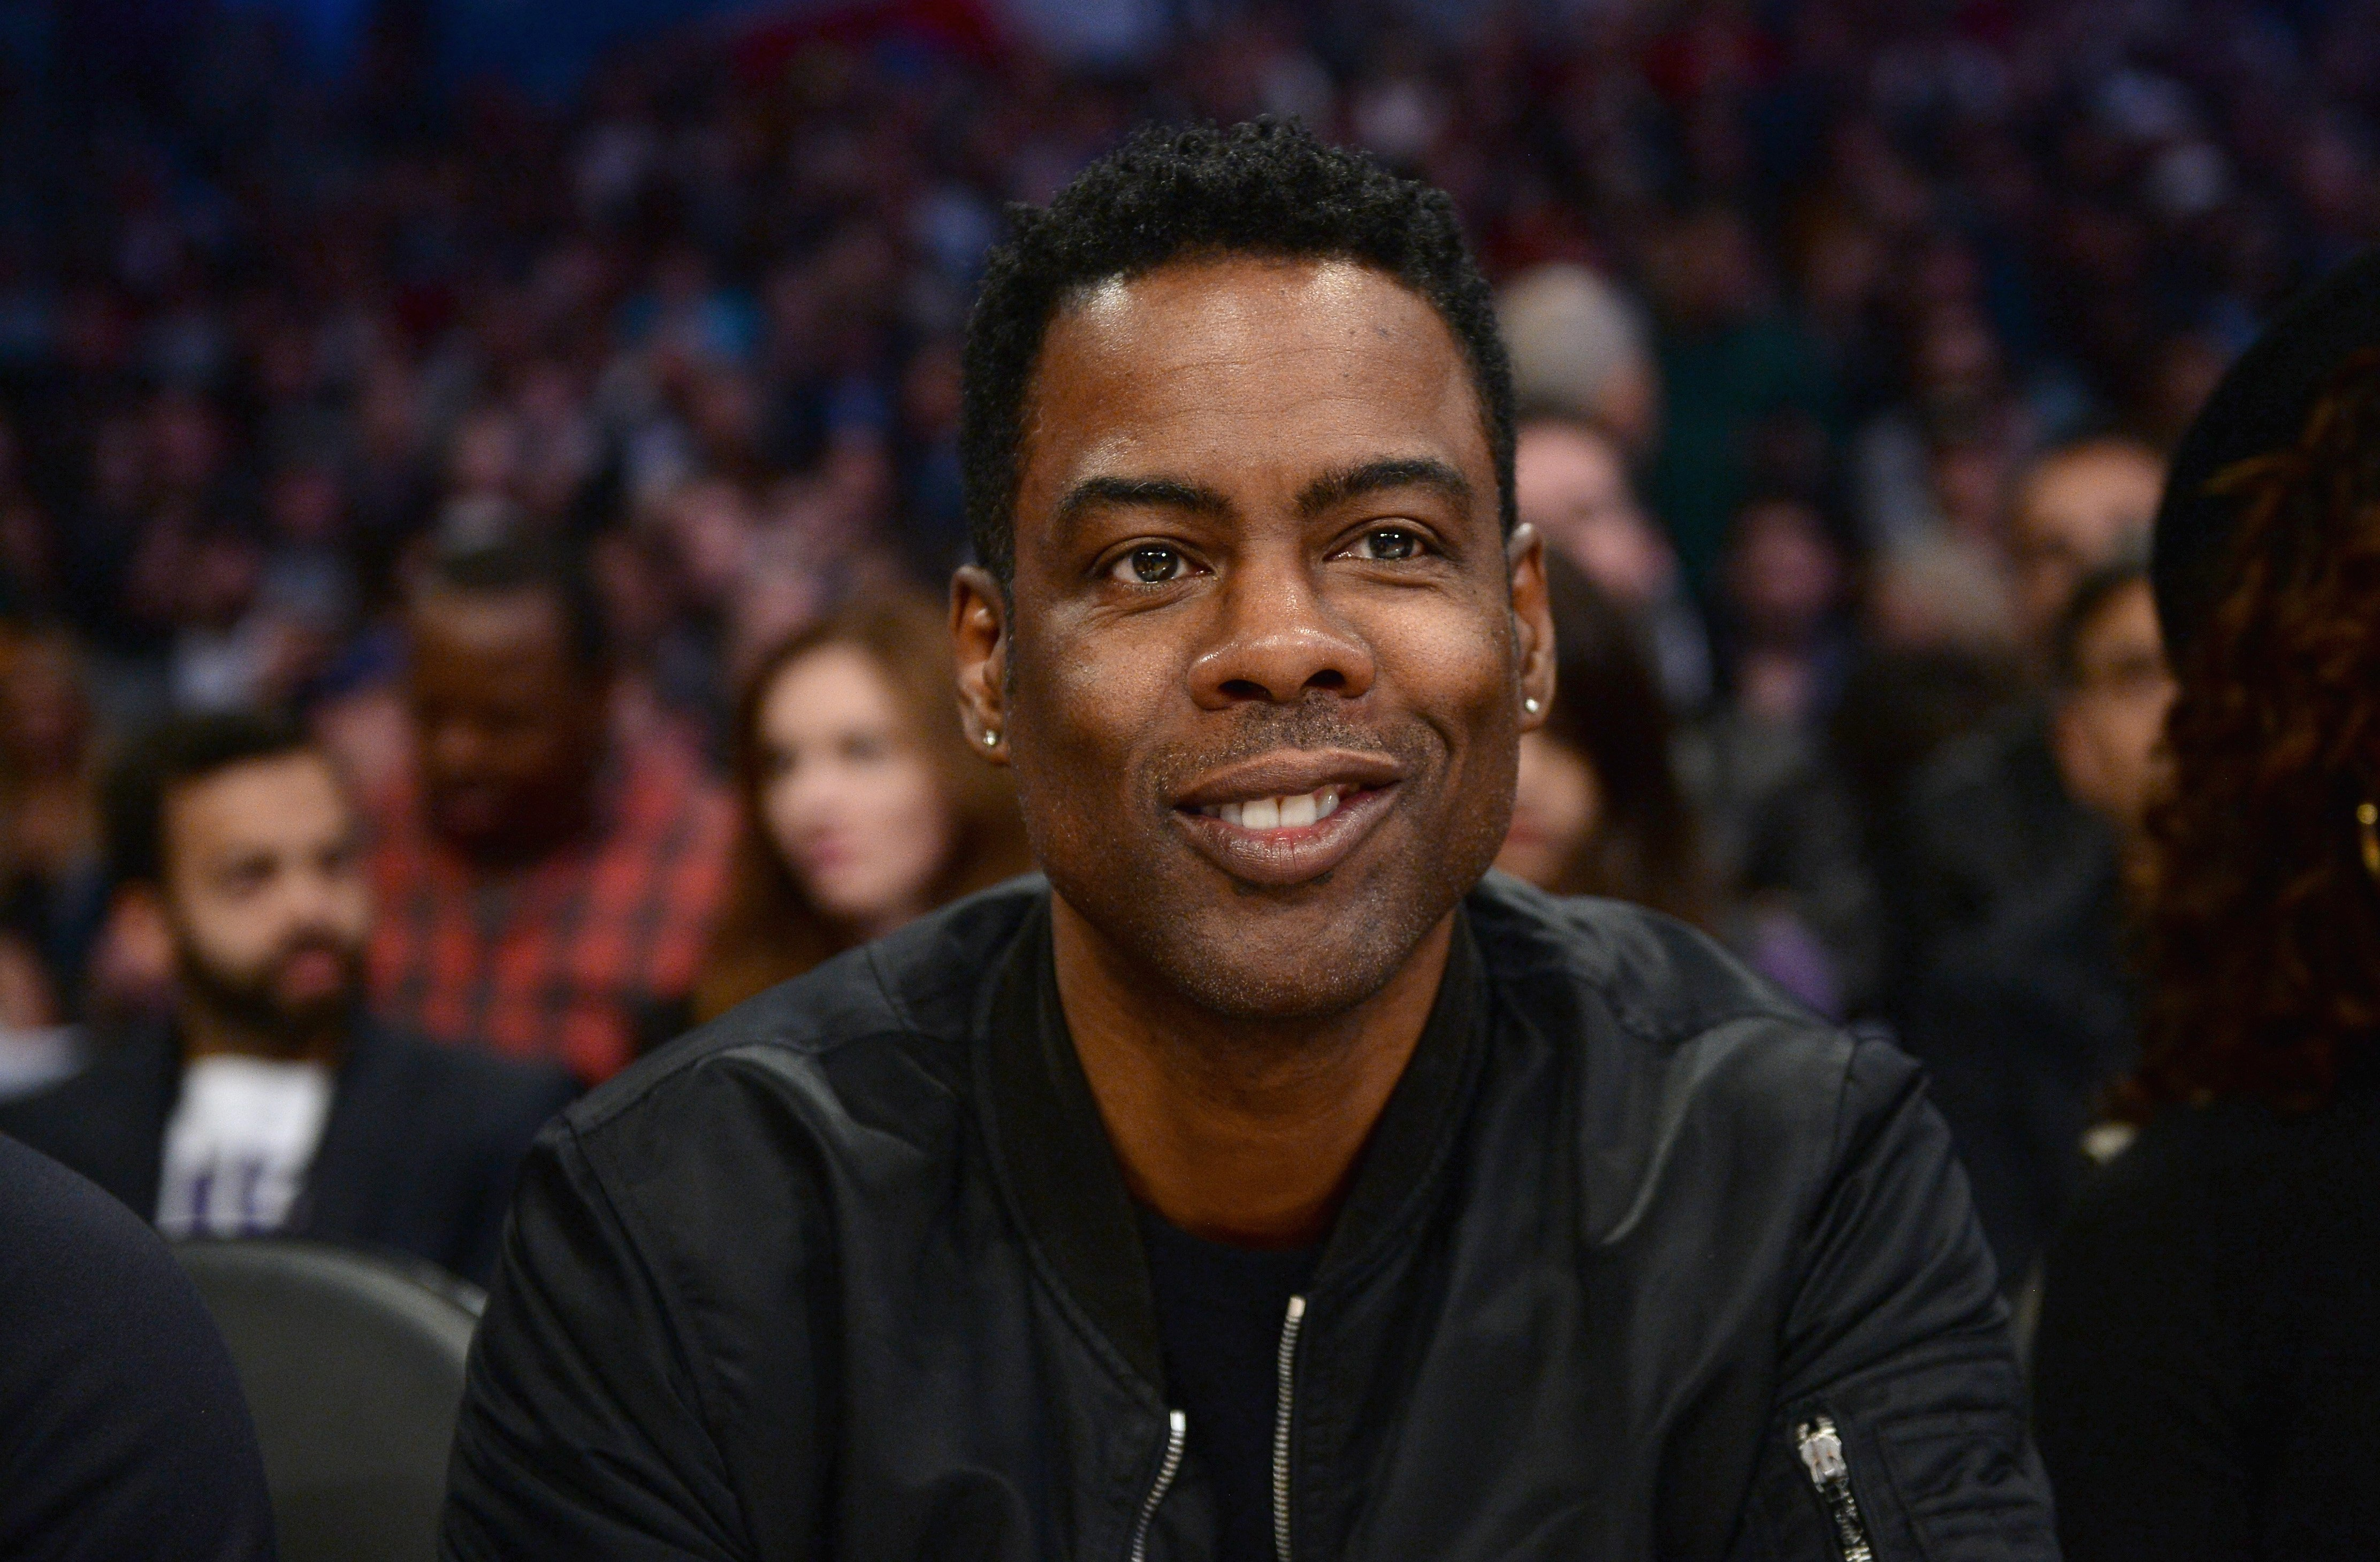 Chris Rock attending the NBA All-Star Game 2018 at Staples Center on February 18, 2018 in Los Angeles, California. | Source: Getty